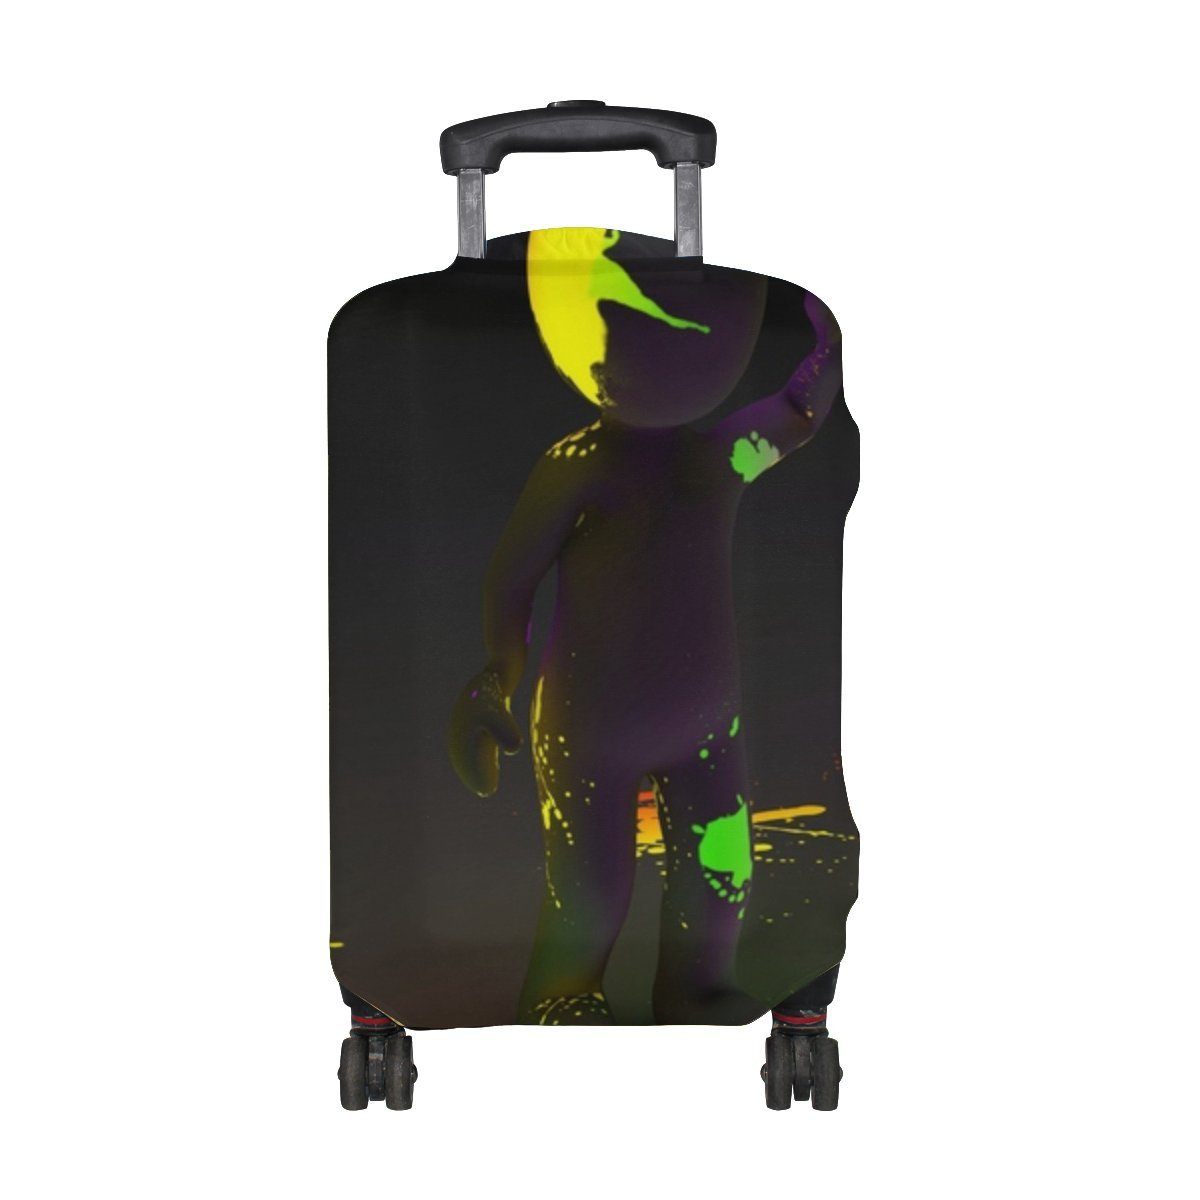 Luggage clipart person. Amazon com paint pattern